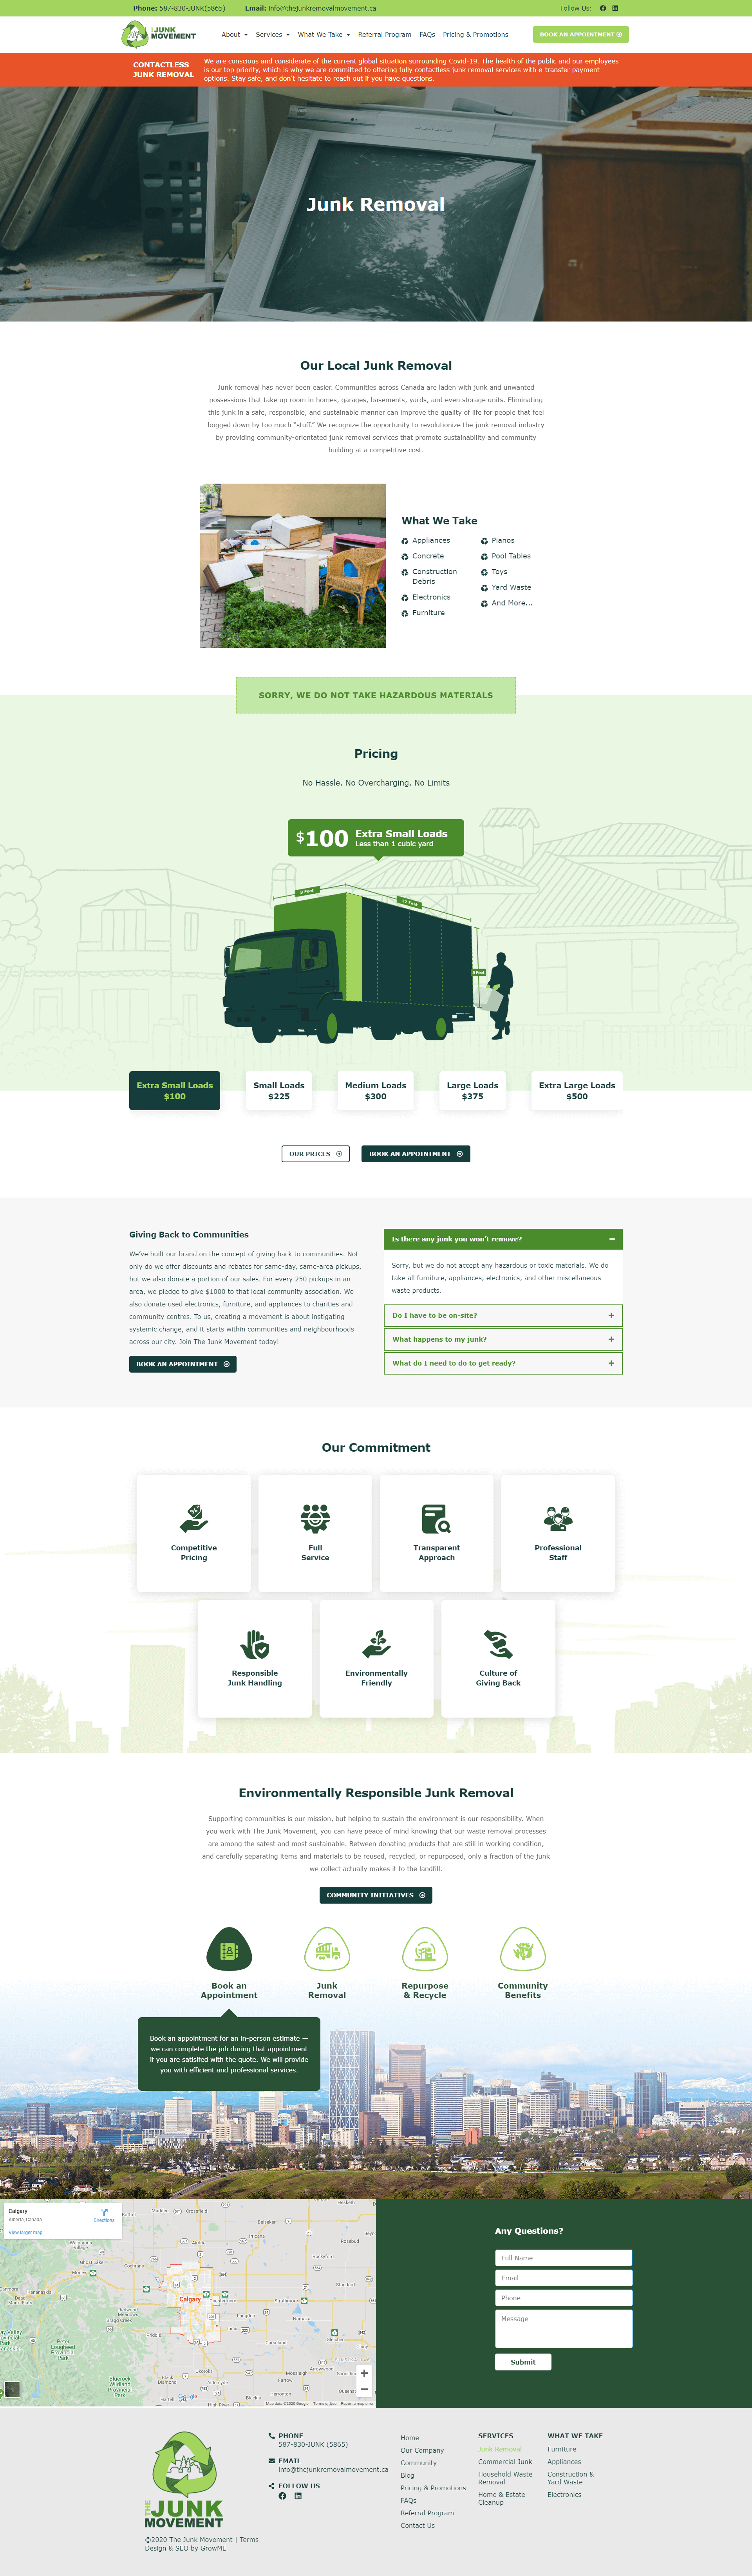 Junk Removal Movement Service Page